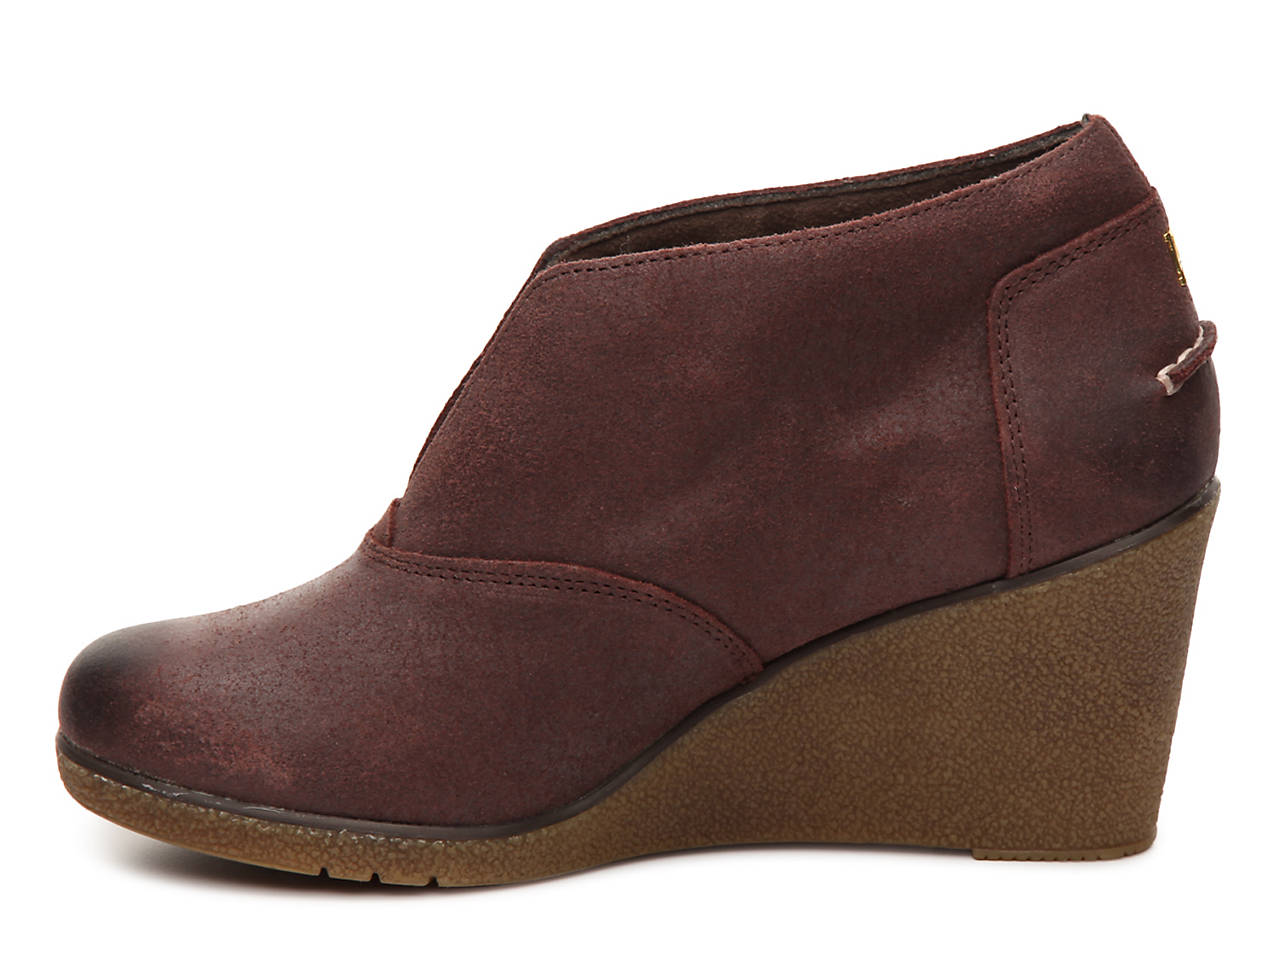 064d819f926 Sperry Top-Sider Harlow Brook Wedge Bootie Women s Shoes